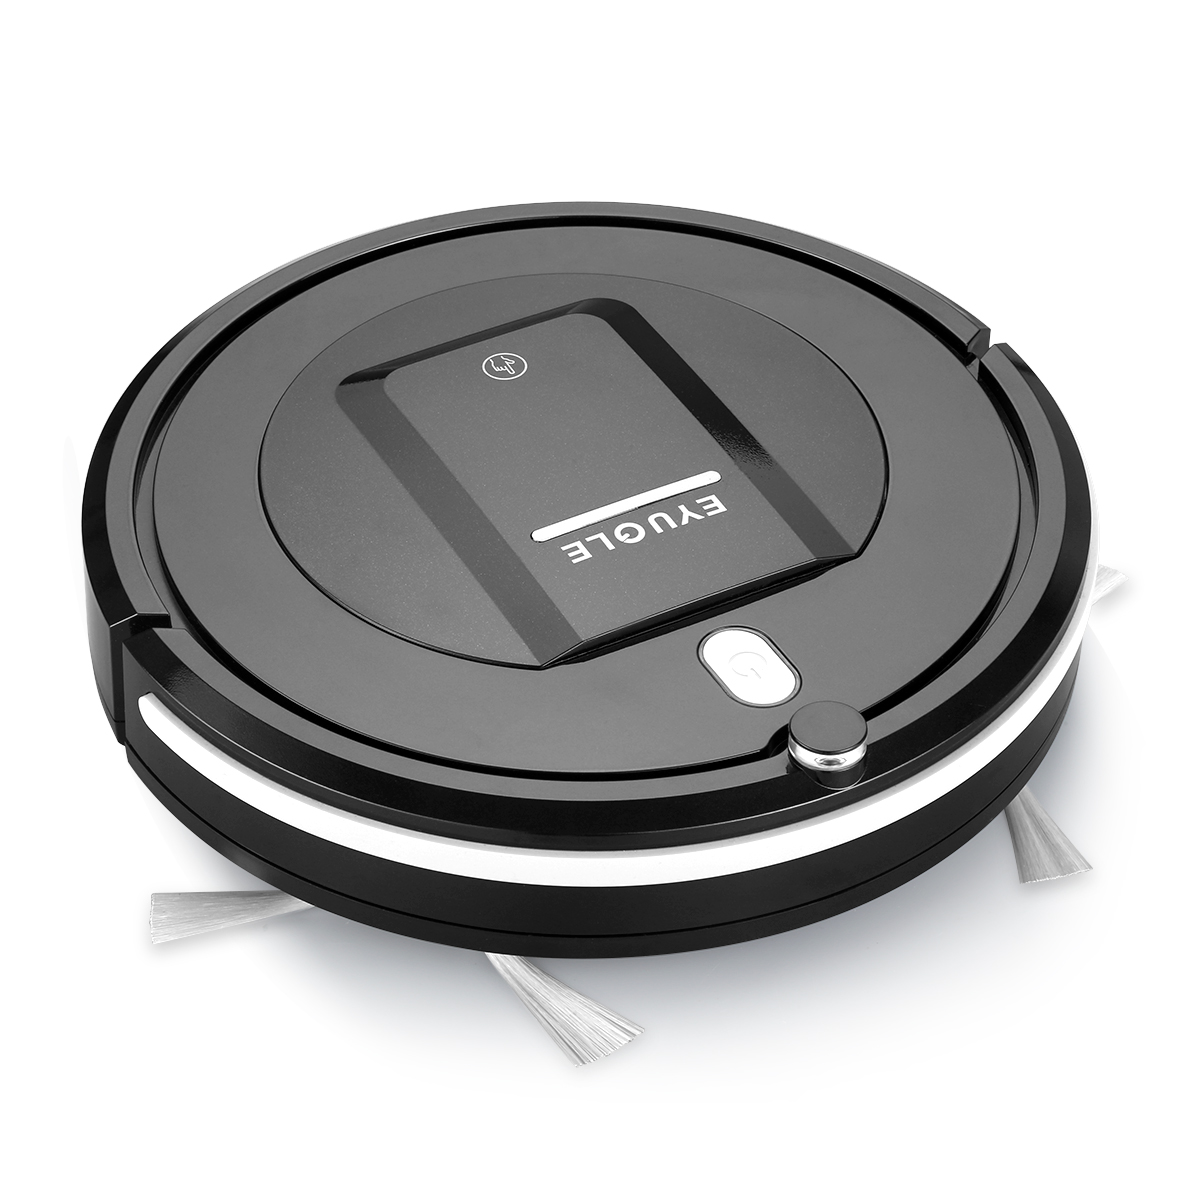 Eyugle Sweeping Vacuum Robot Cleaner,500pa Suction 3 Cleaning Mode